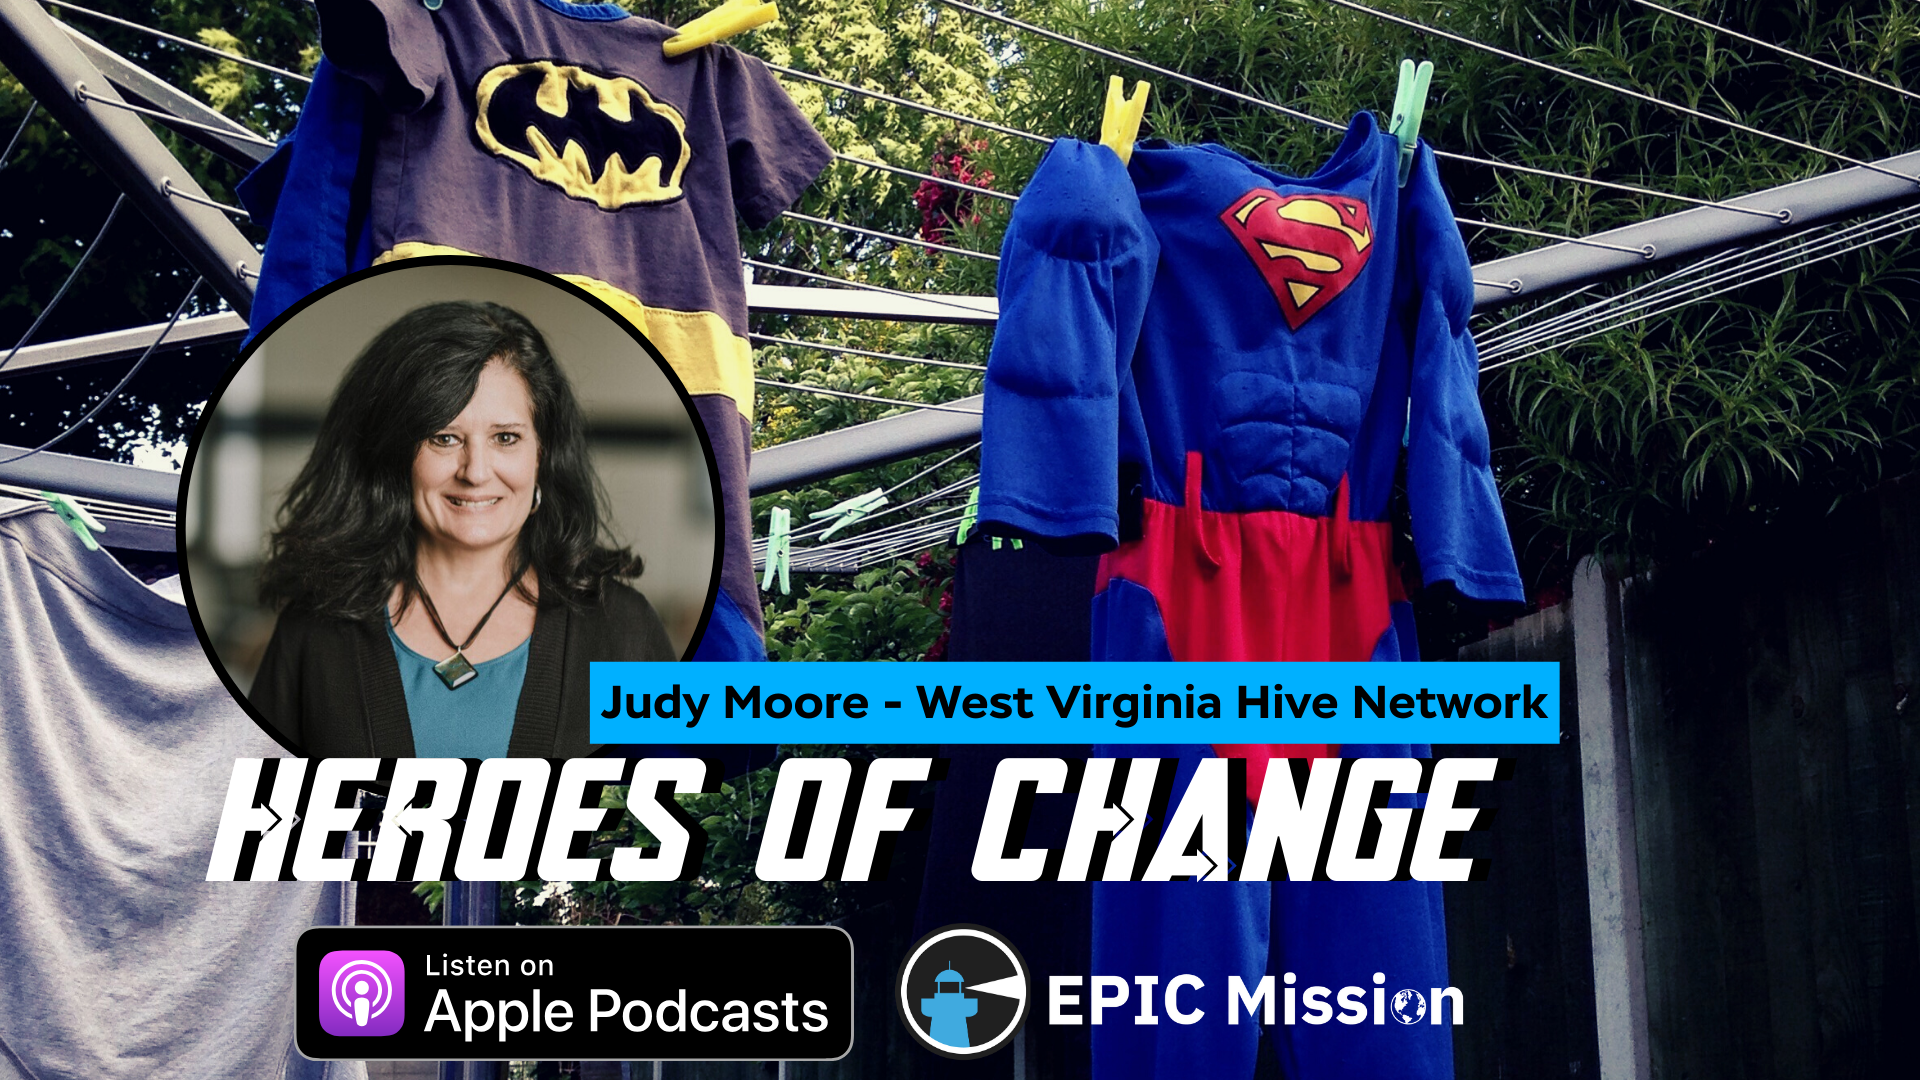 Heroes of Change: with Judy Moore of West Virginia Hive Network